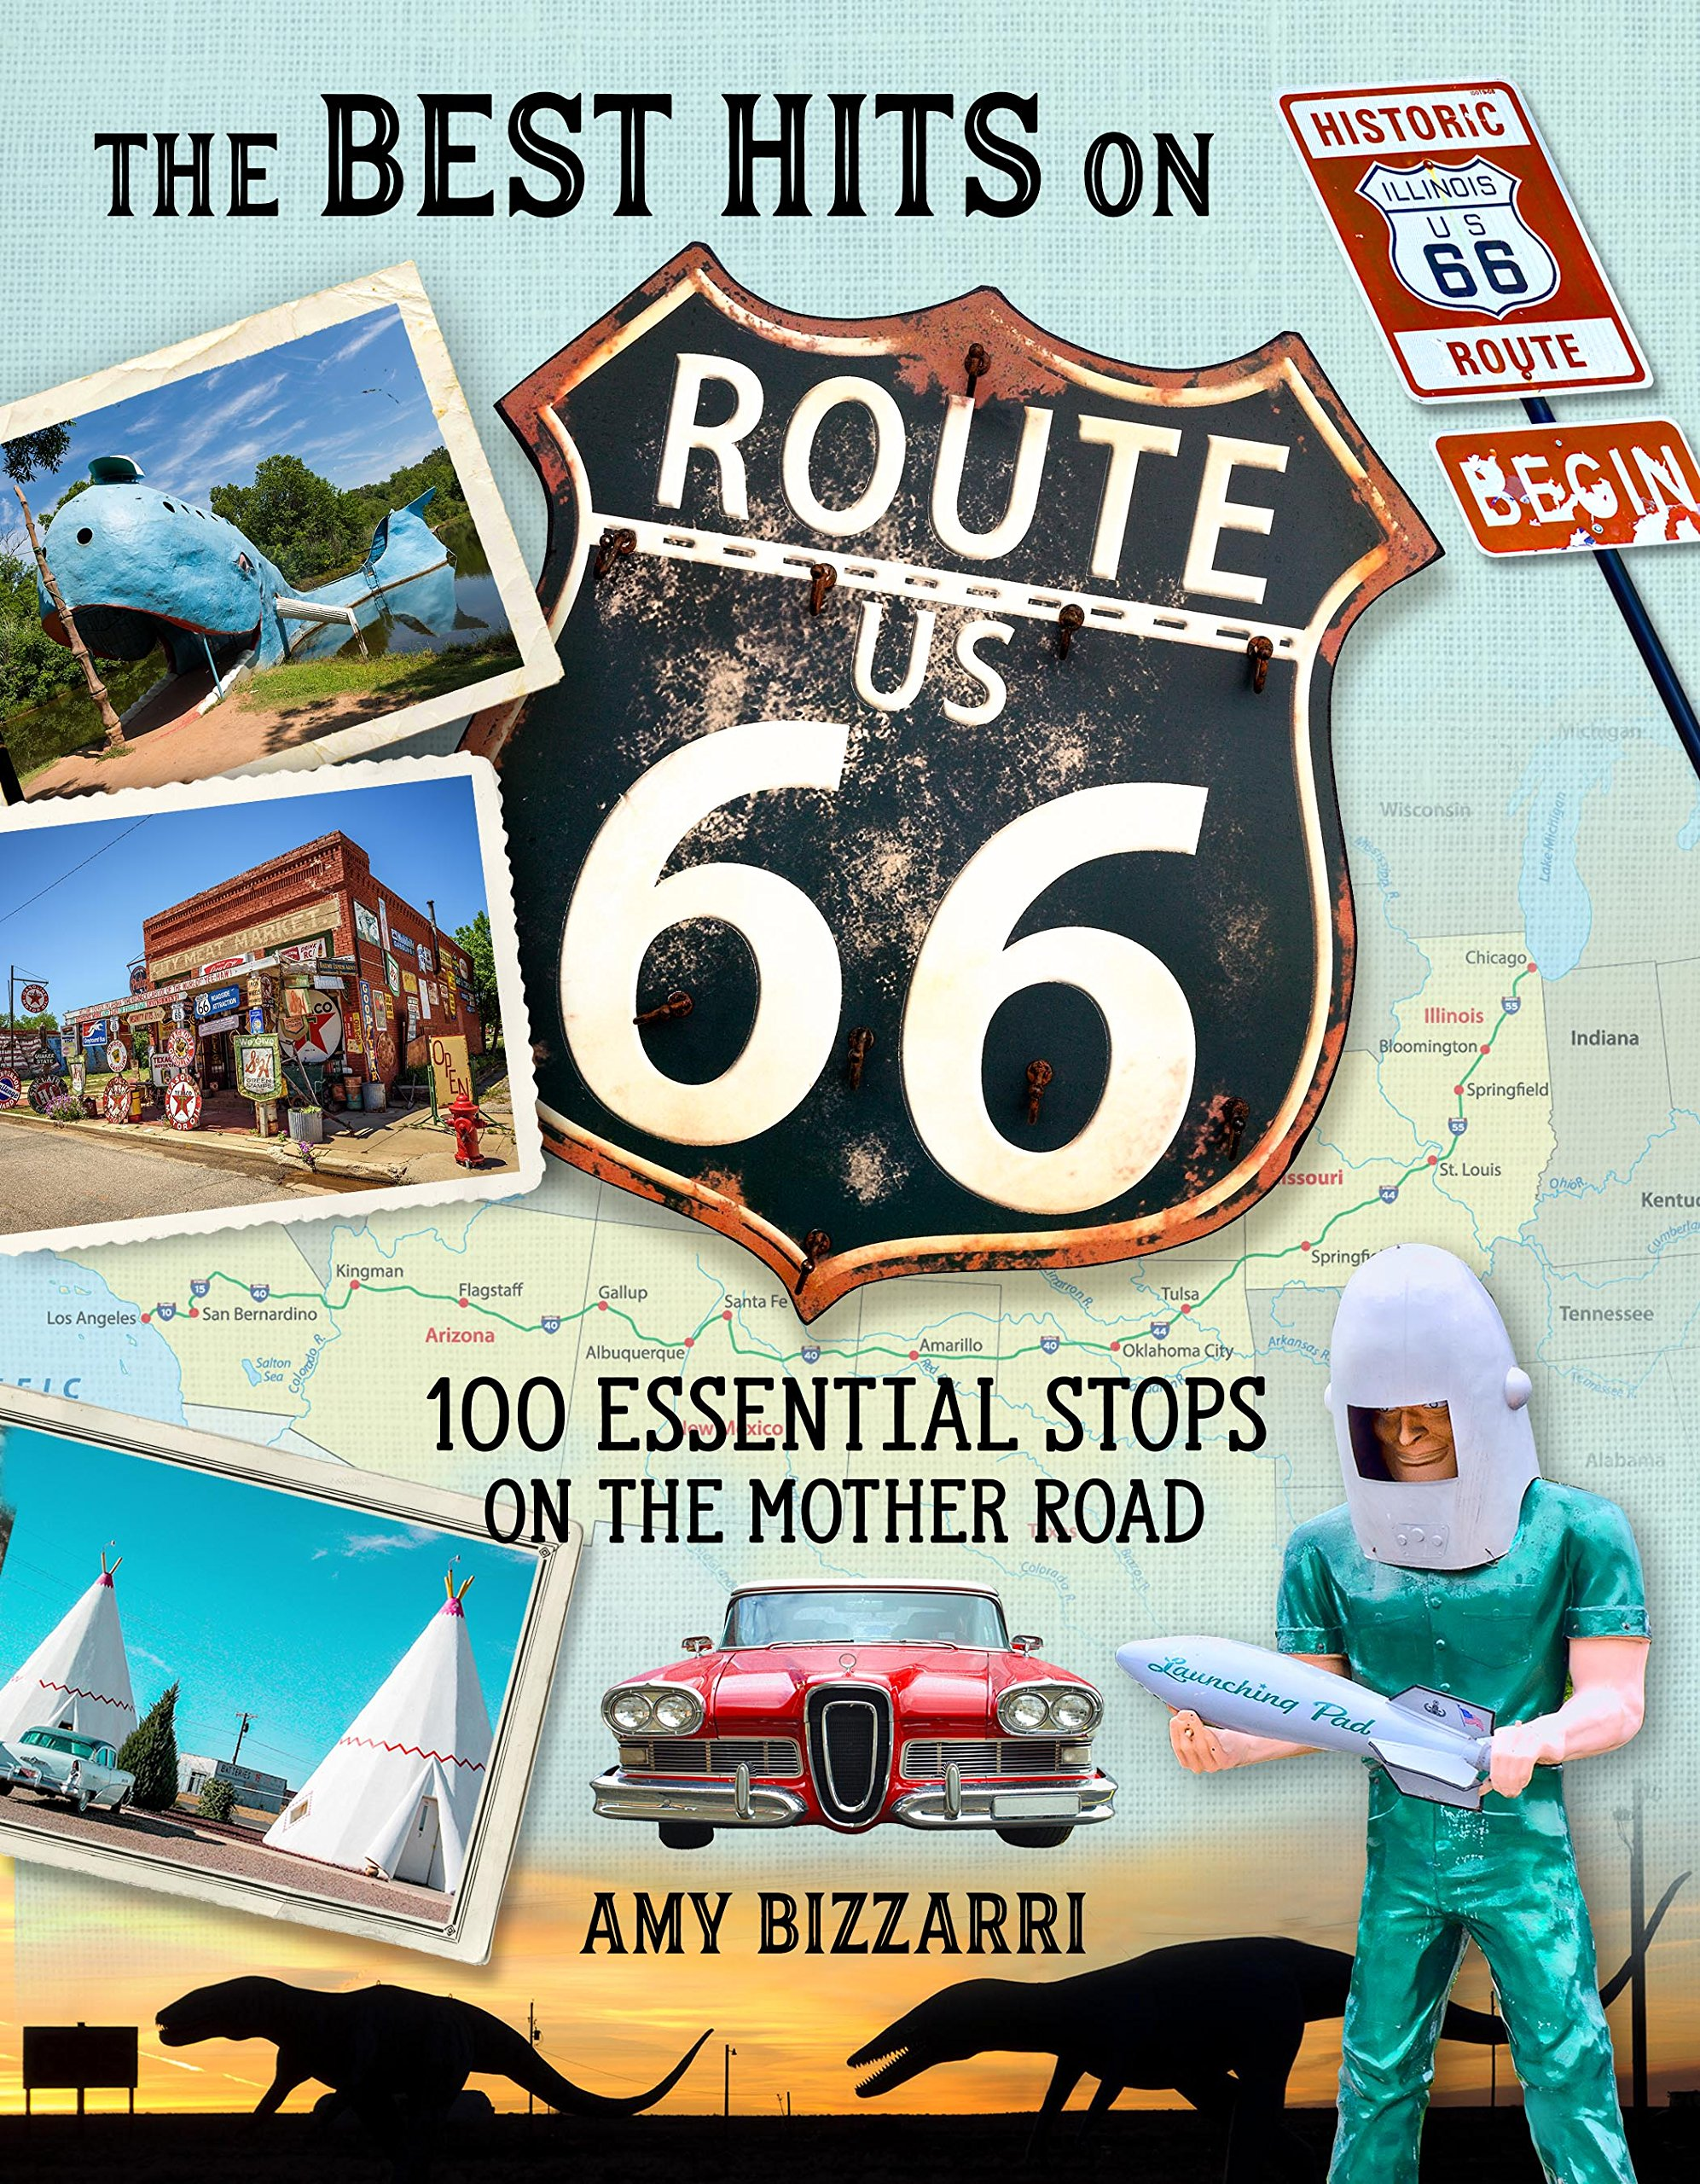 The Best Hits on Route 66: 100 Essential Stops on the Mother Road by Globe Pequot